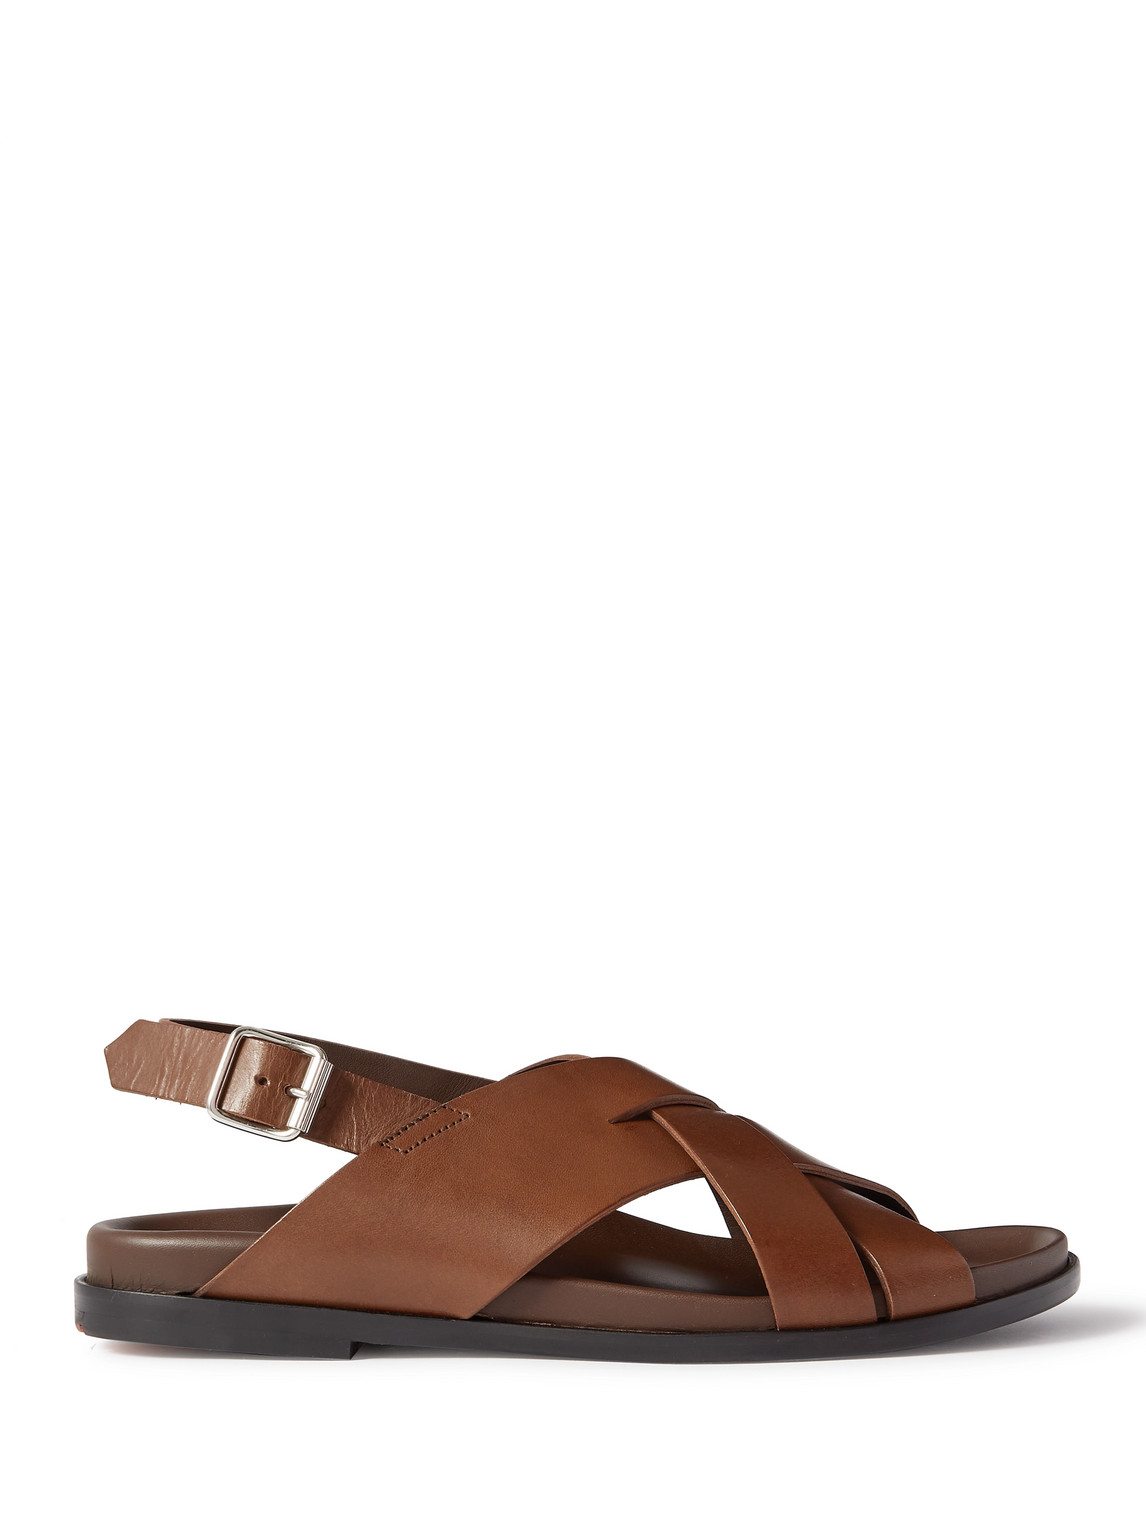 Paul Smith CHANDLER LEATHER SANDALS